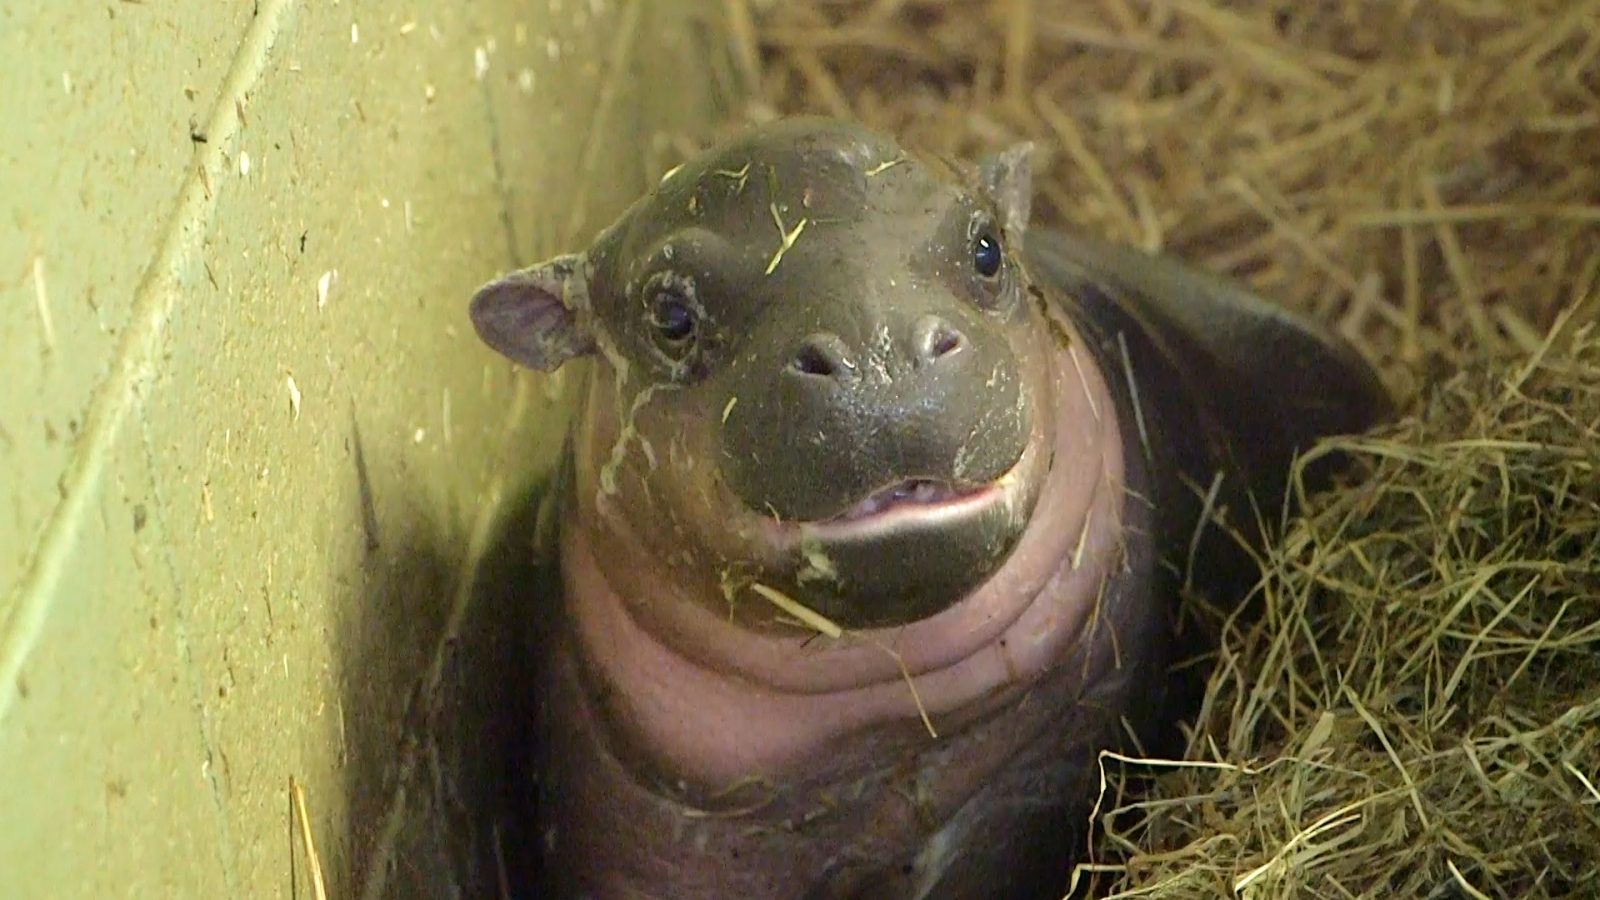 Endangered baby pygmy hippo born at Whipsnade Zoo